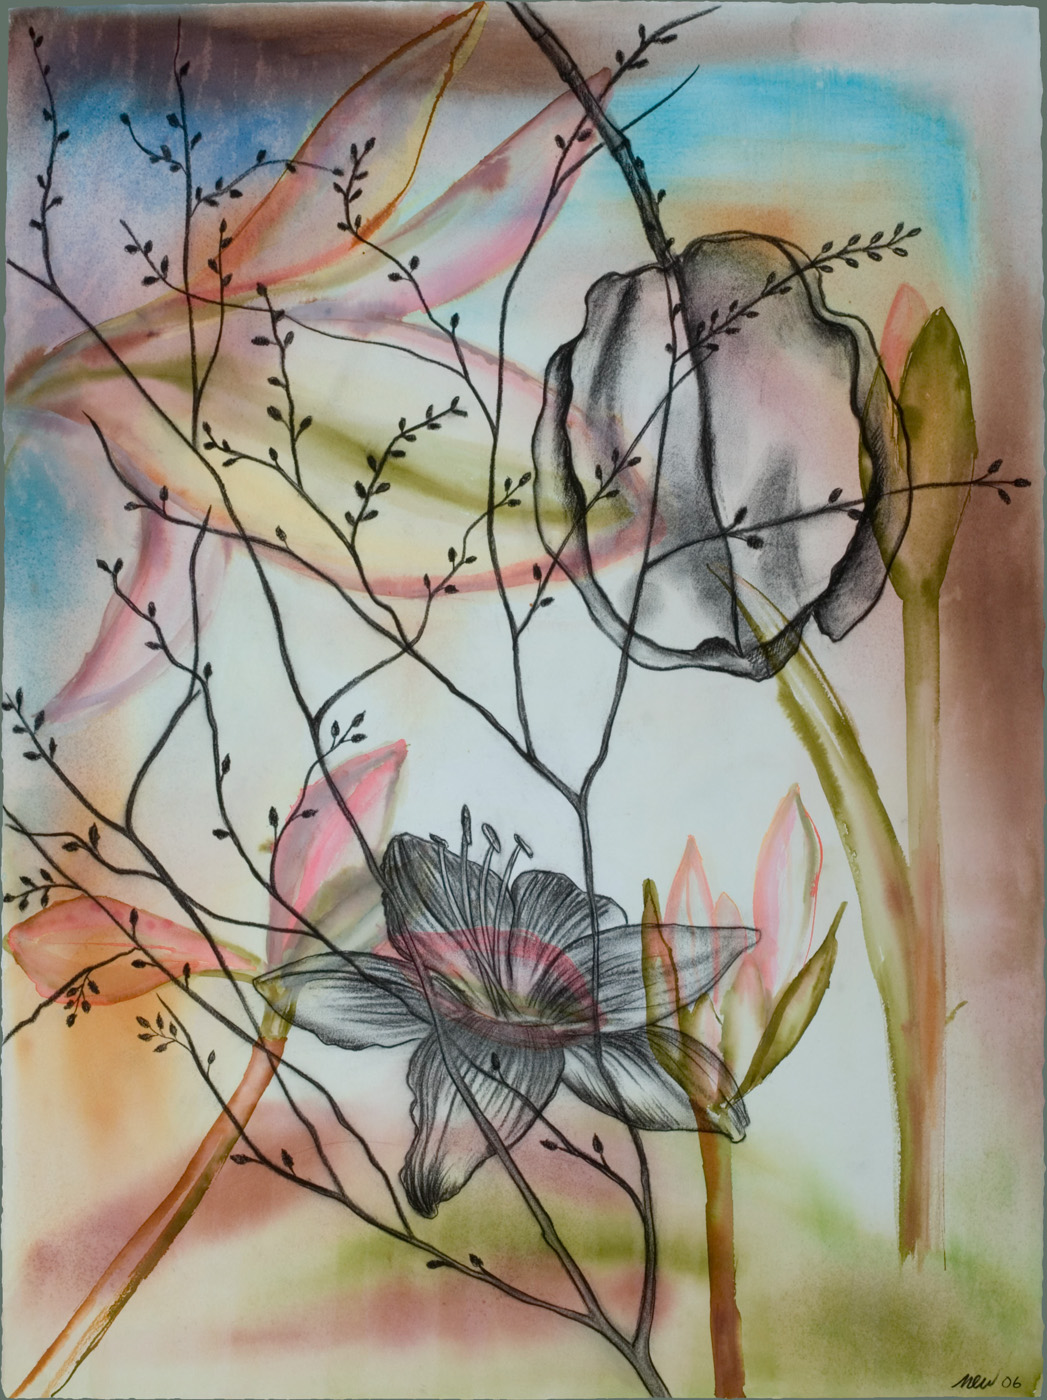 Flowers and Pod Watercolor, ink, and charcoal on paper, 22 x 30 inches